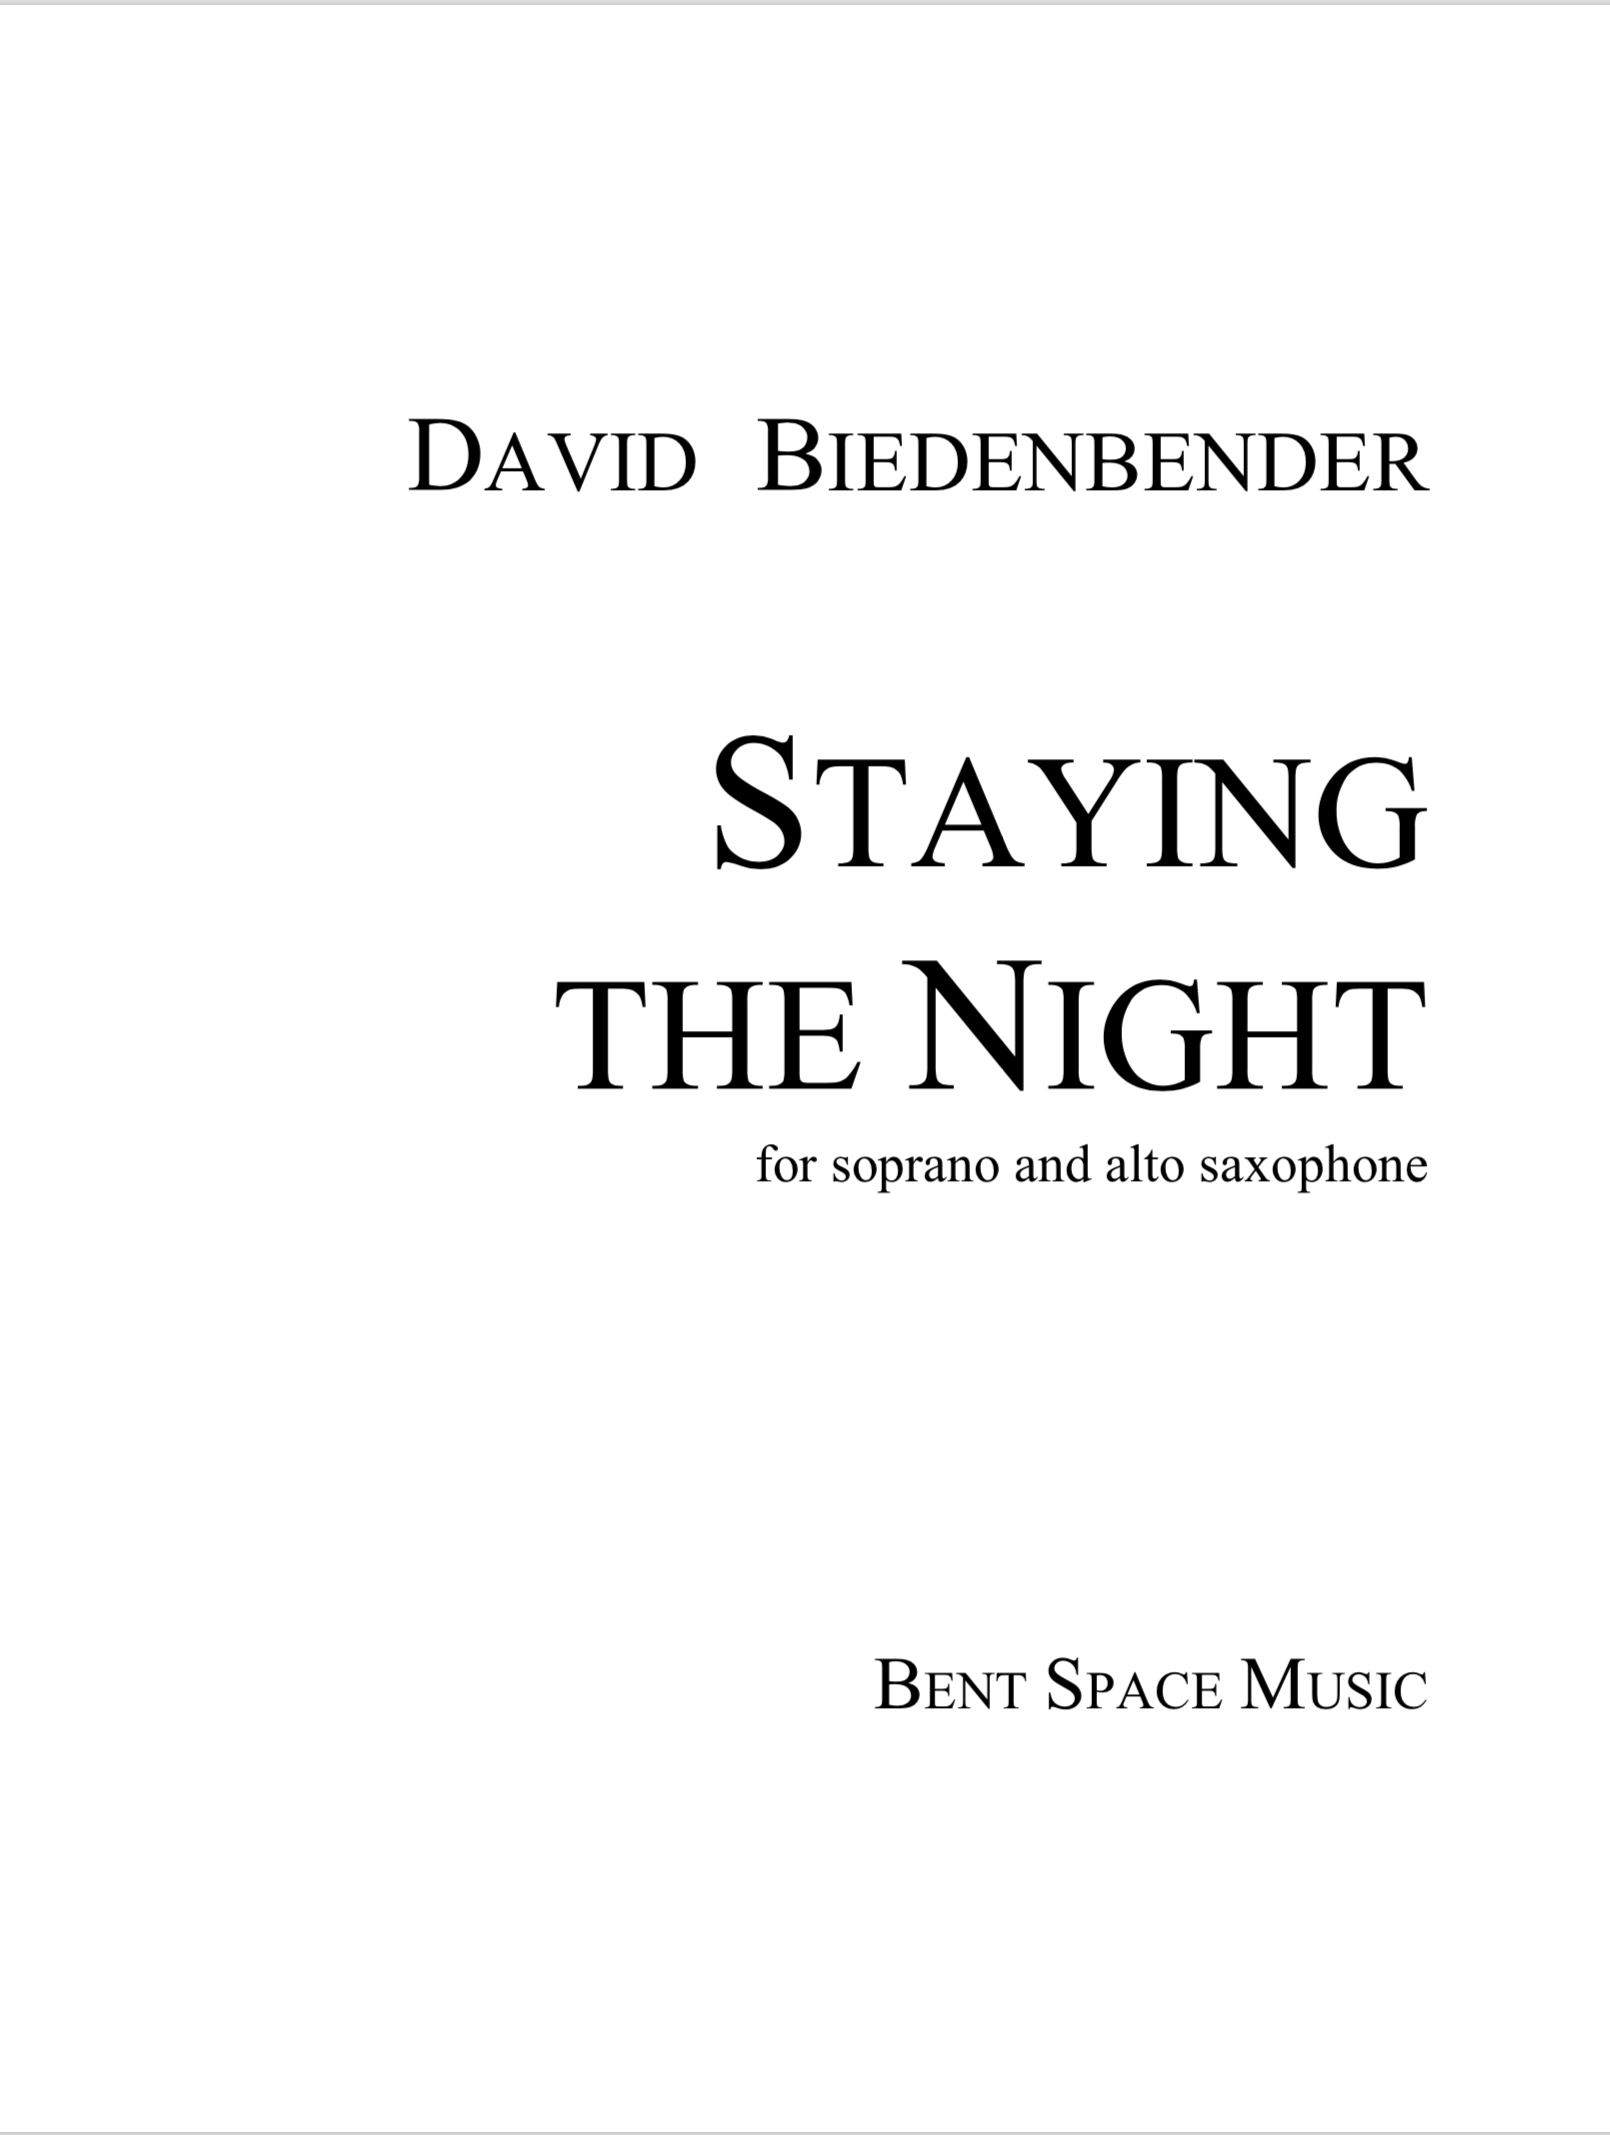 Staying The Night (Soprano/Alto Sax Version) by David Biedenbender